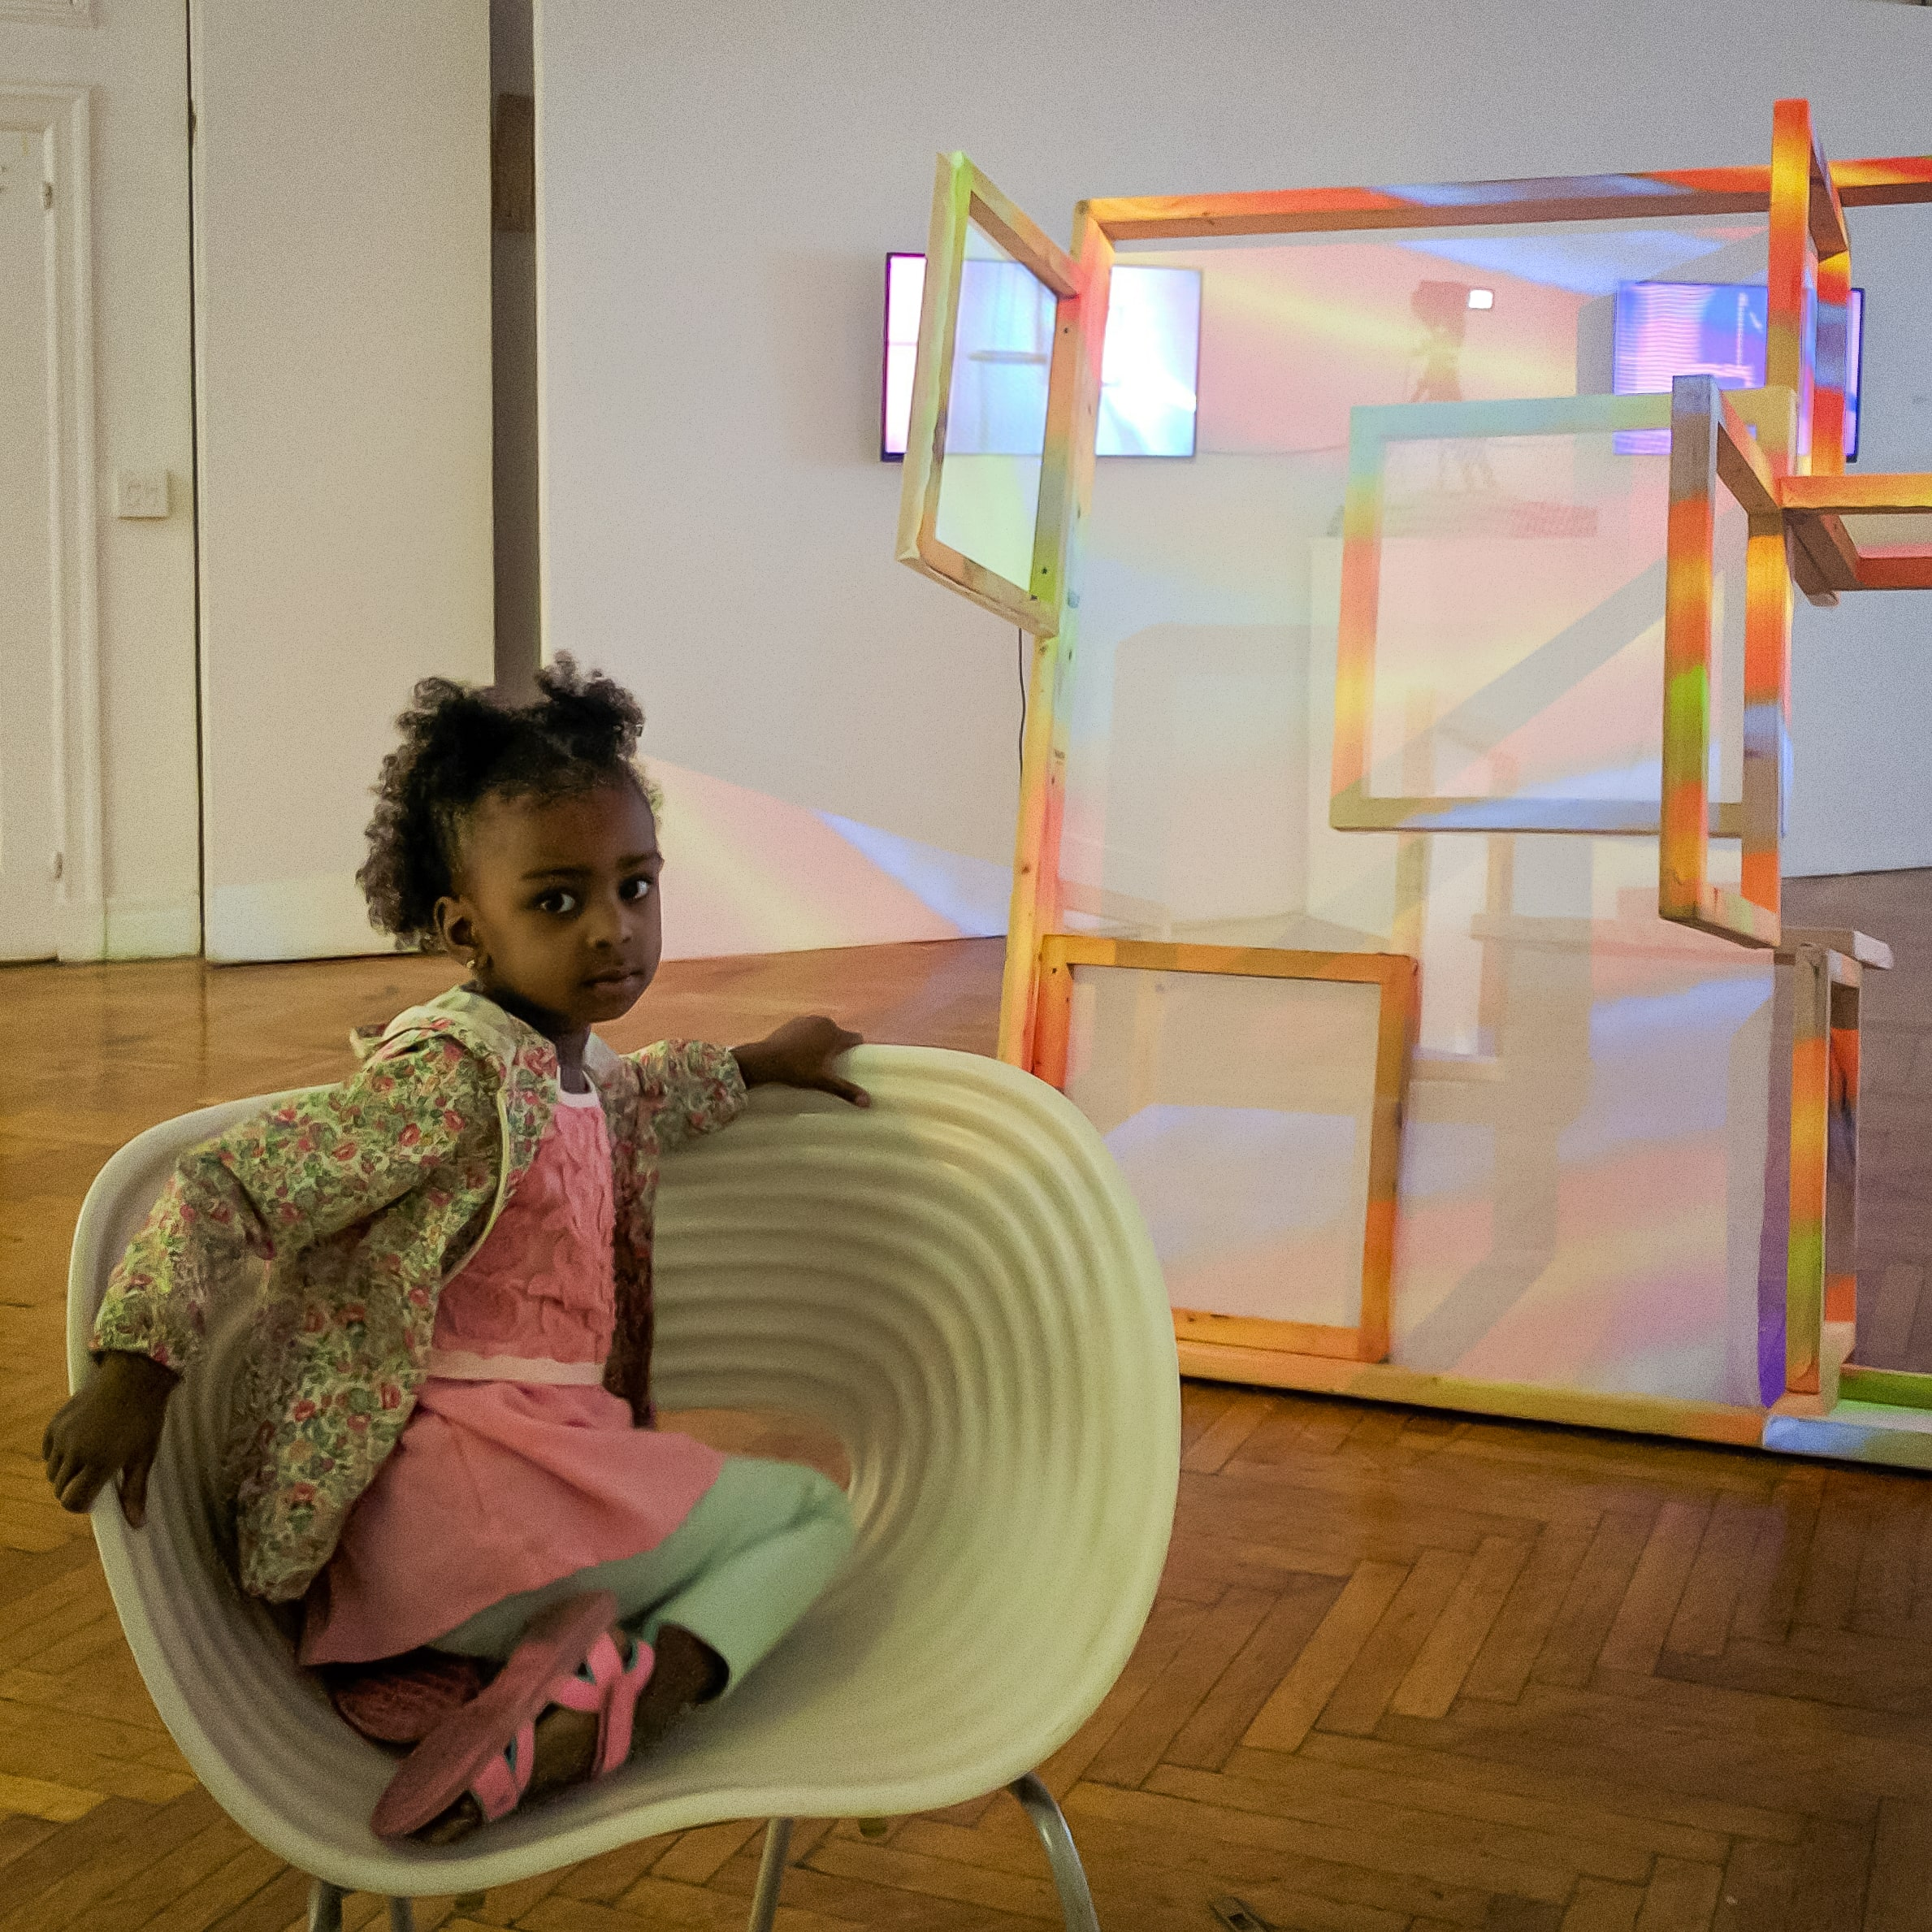 A young girl sits in an exhibition at Andrew Freedman Home in front of a projection mapping sculpture by Benton C Bainbridge and Xavier Figueroa.